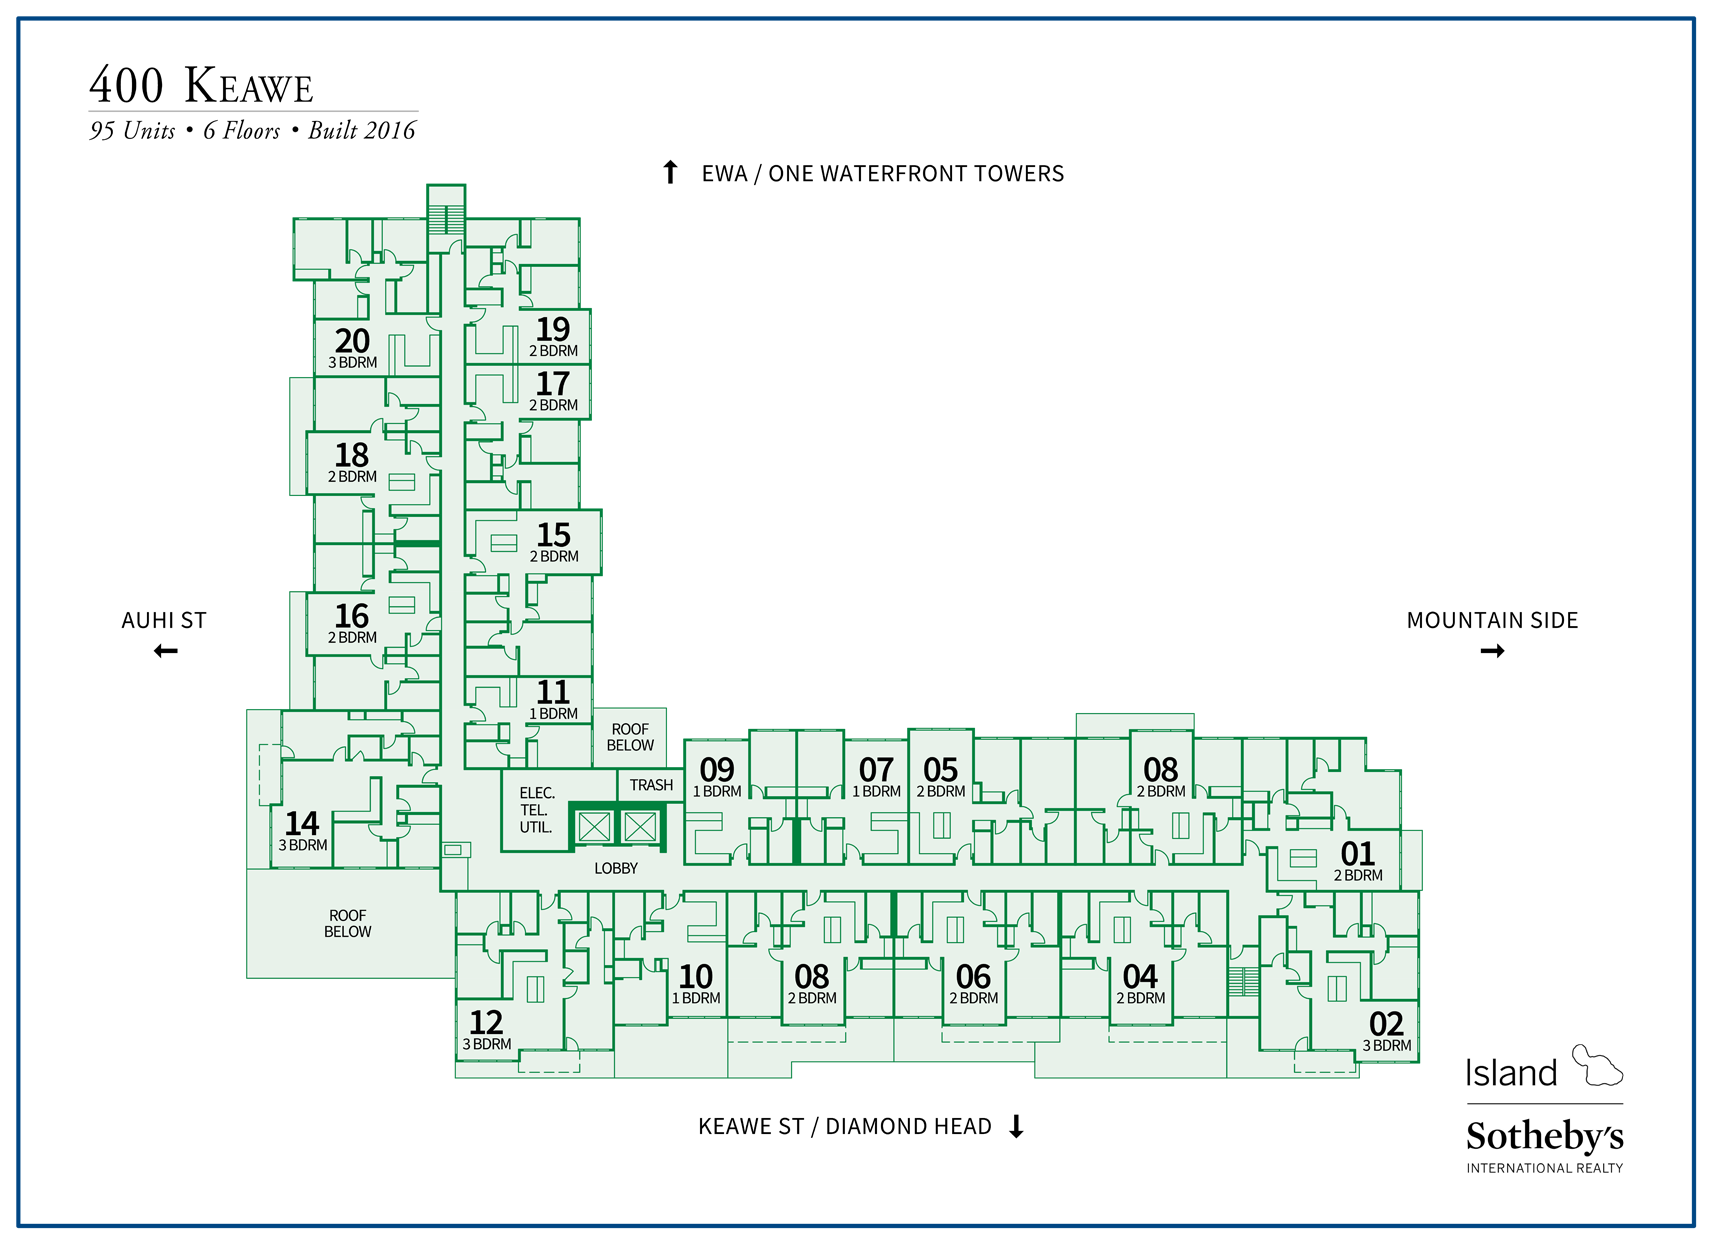 400 keawe site map